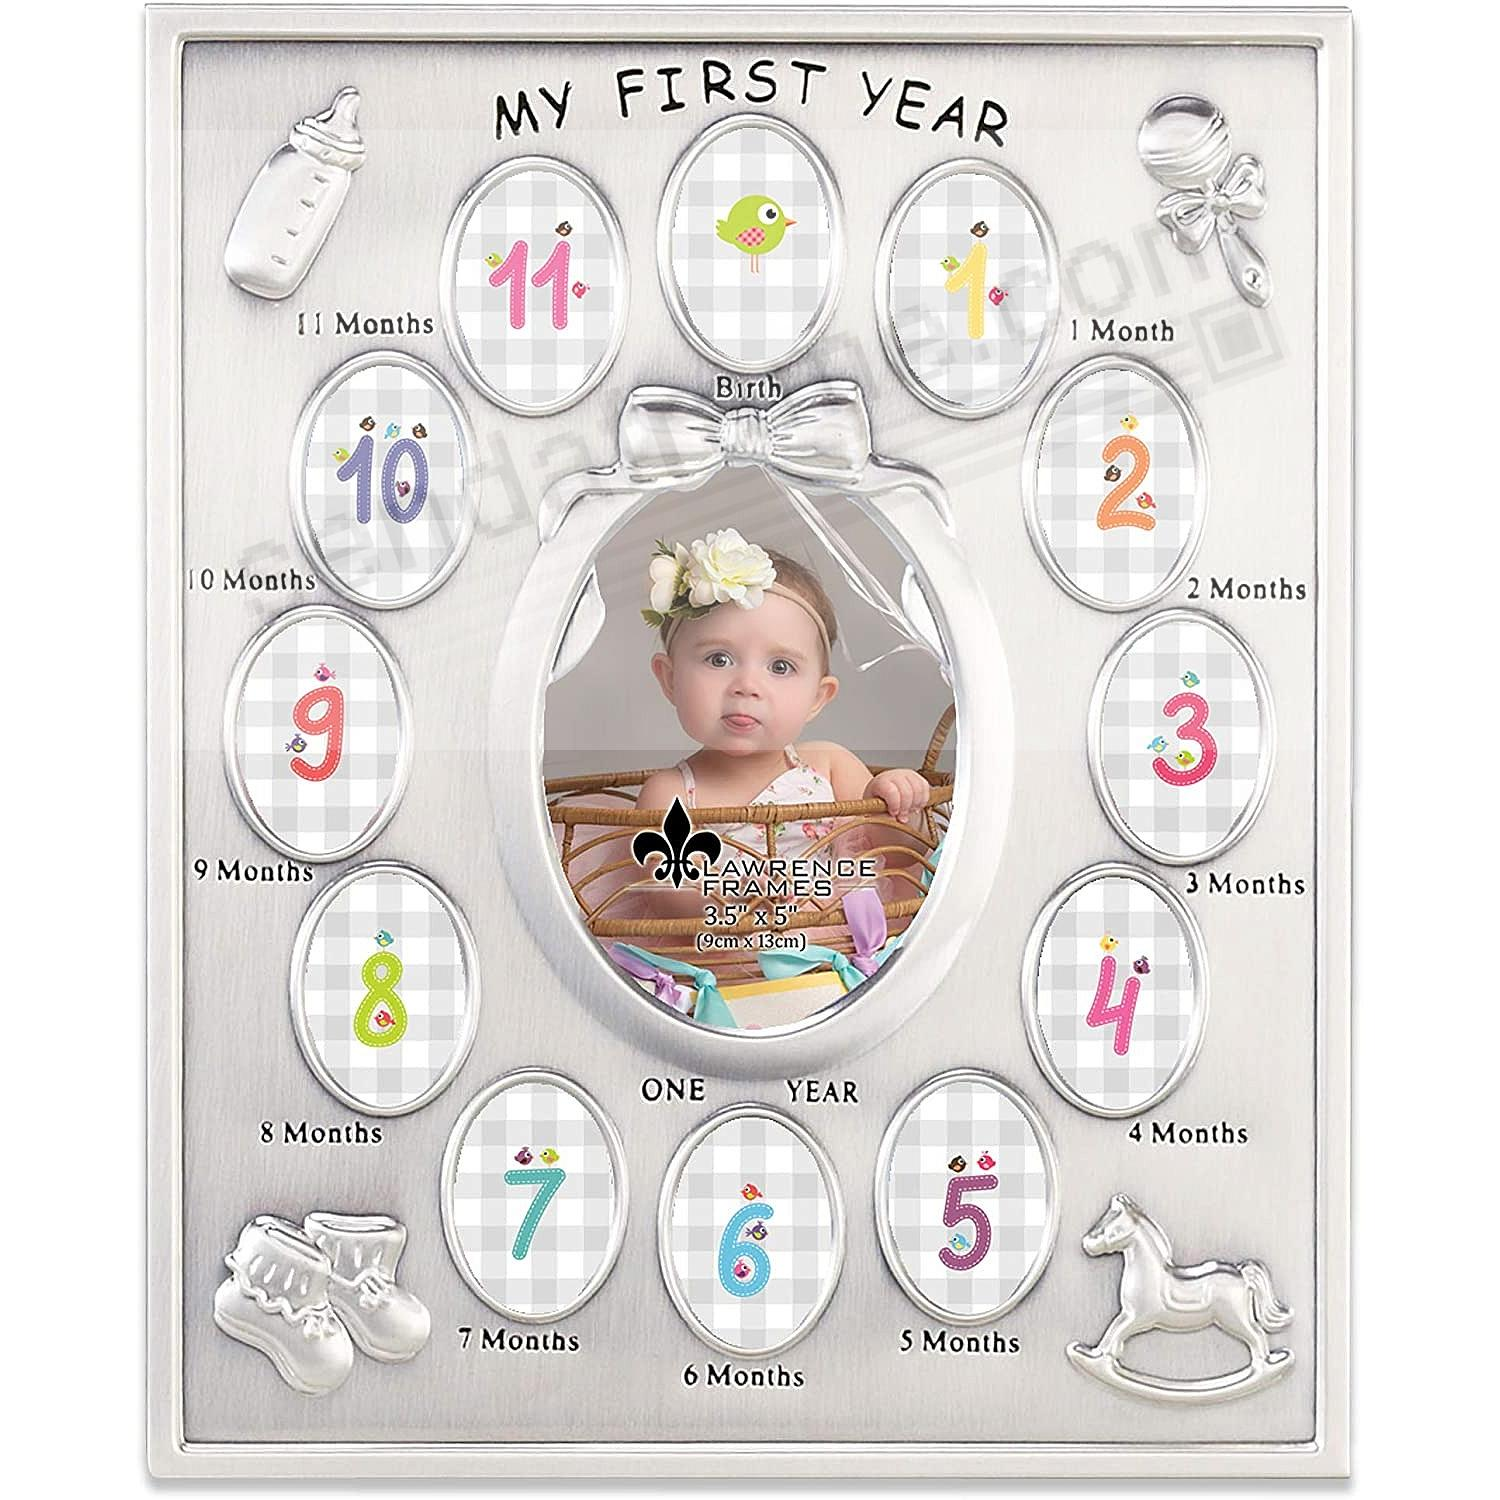 Turn your Baby's First Year photos into a treasured keepsake piece